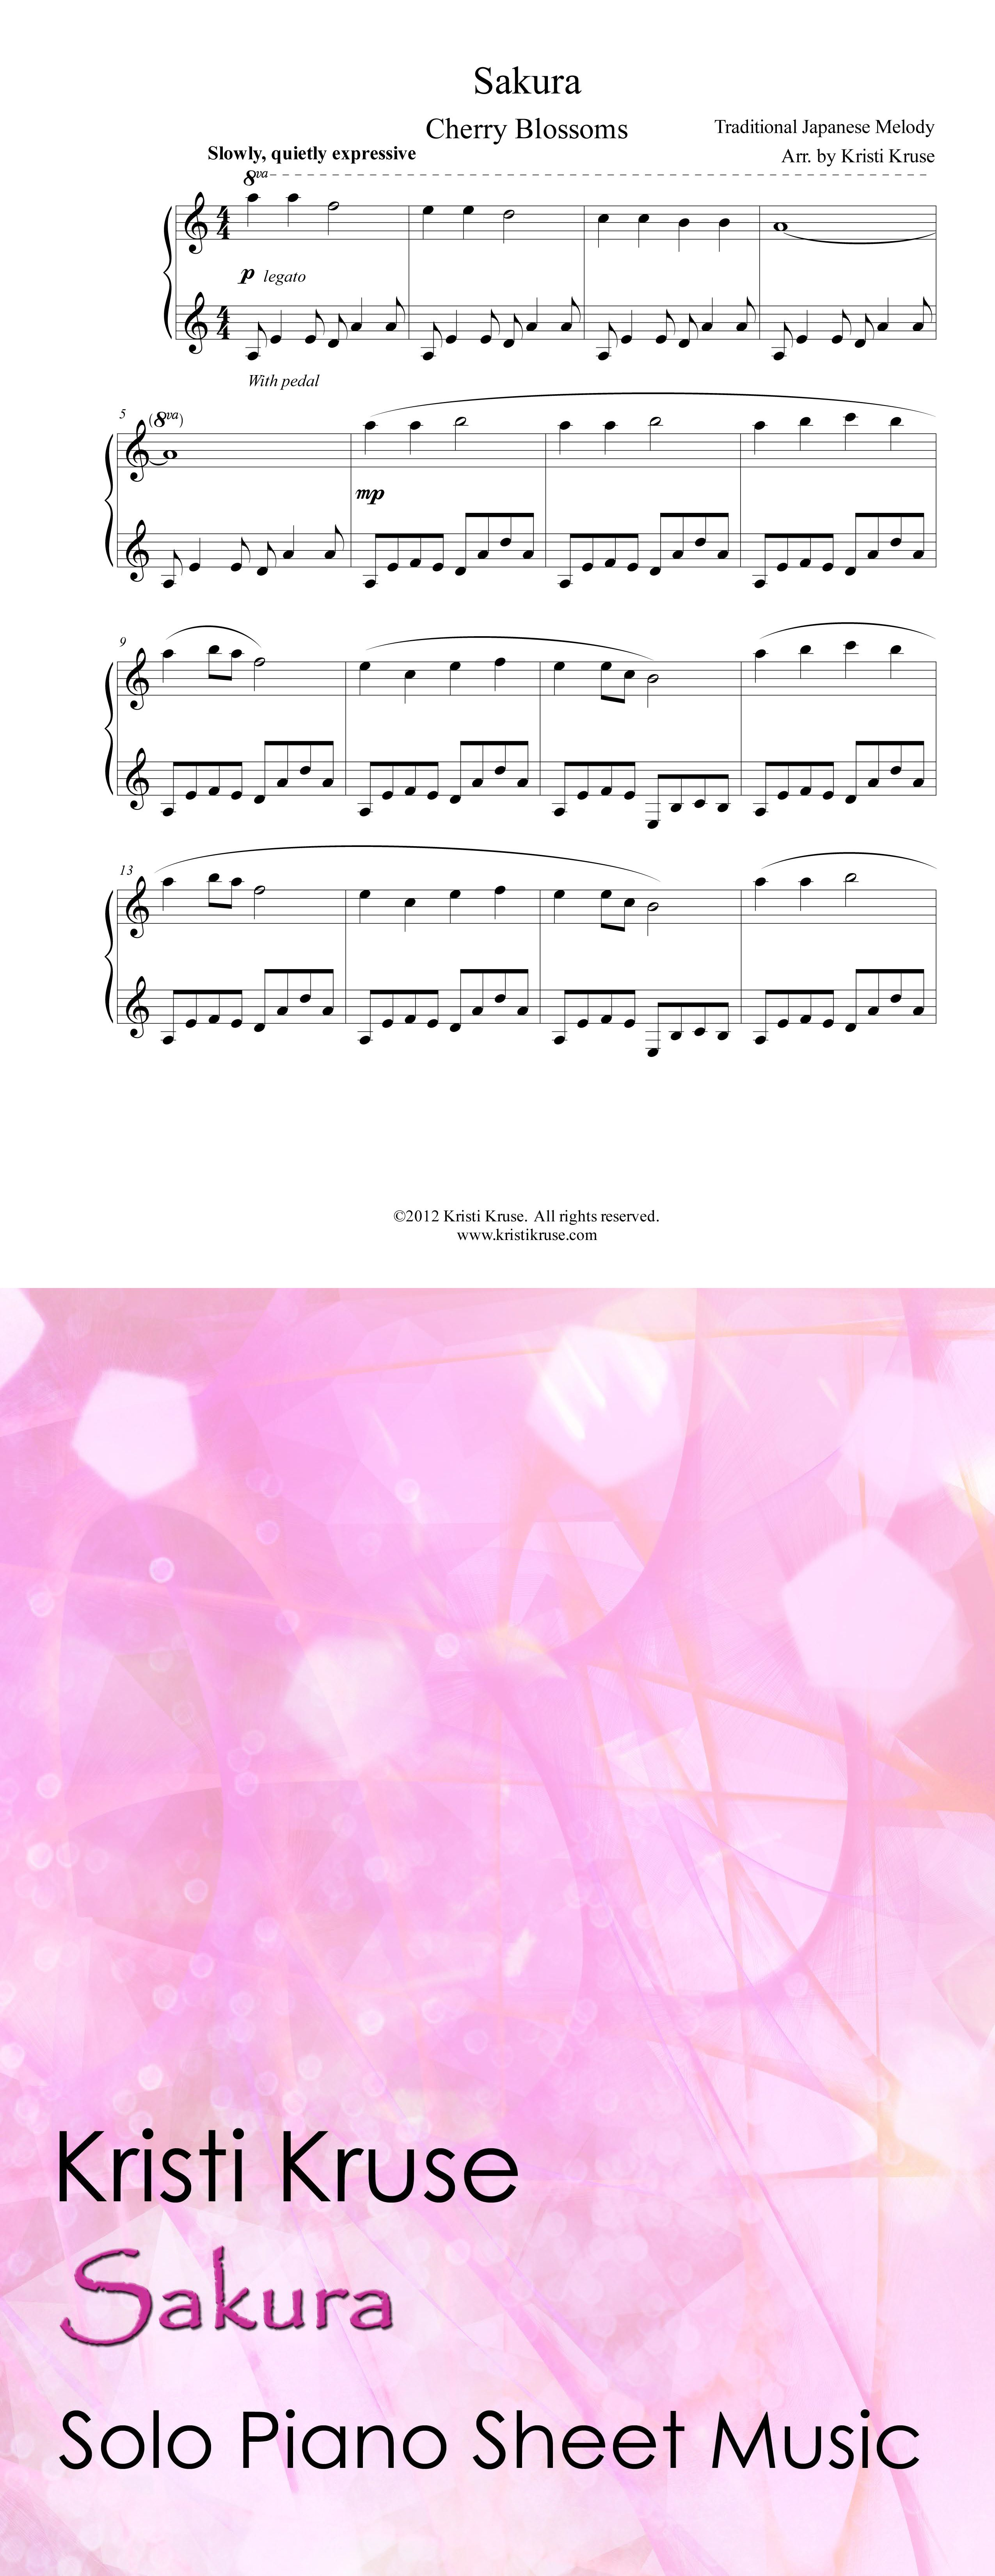 Sakura Cherry Blossoms Piano Sheet Music Traditional Japanese Folk Song Arranged For Solo Piano On Shee Digital Sheet Music Sheet Music Piano Sheet Music